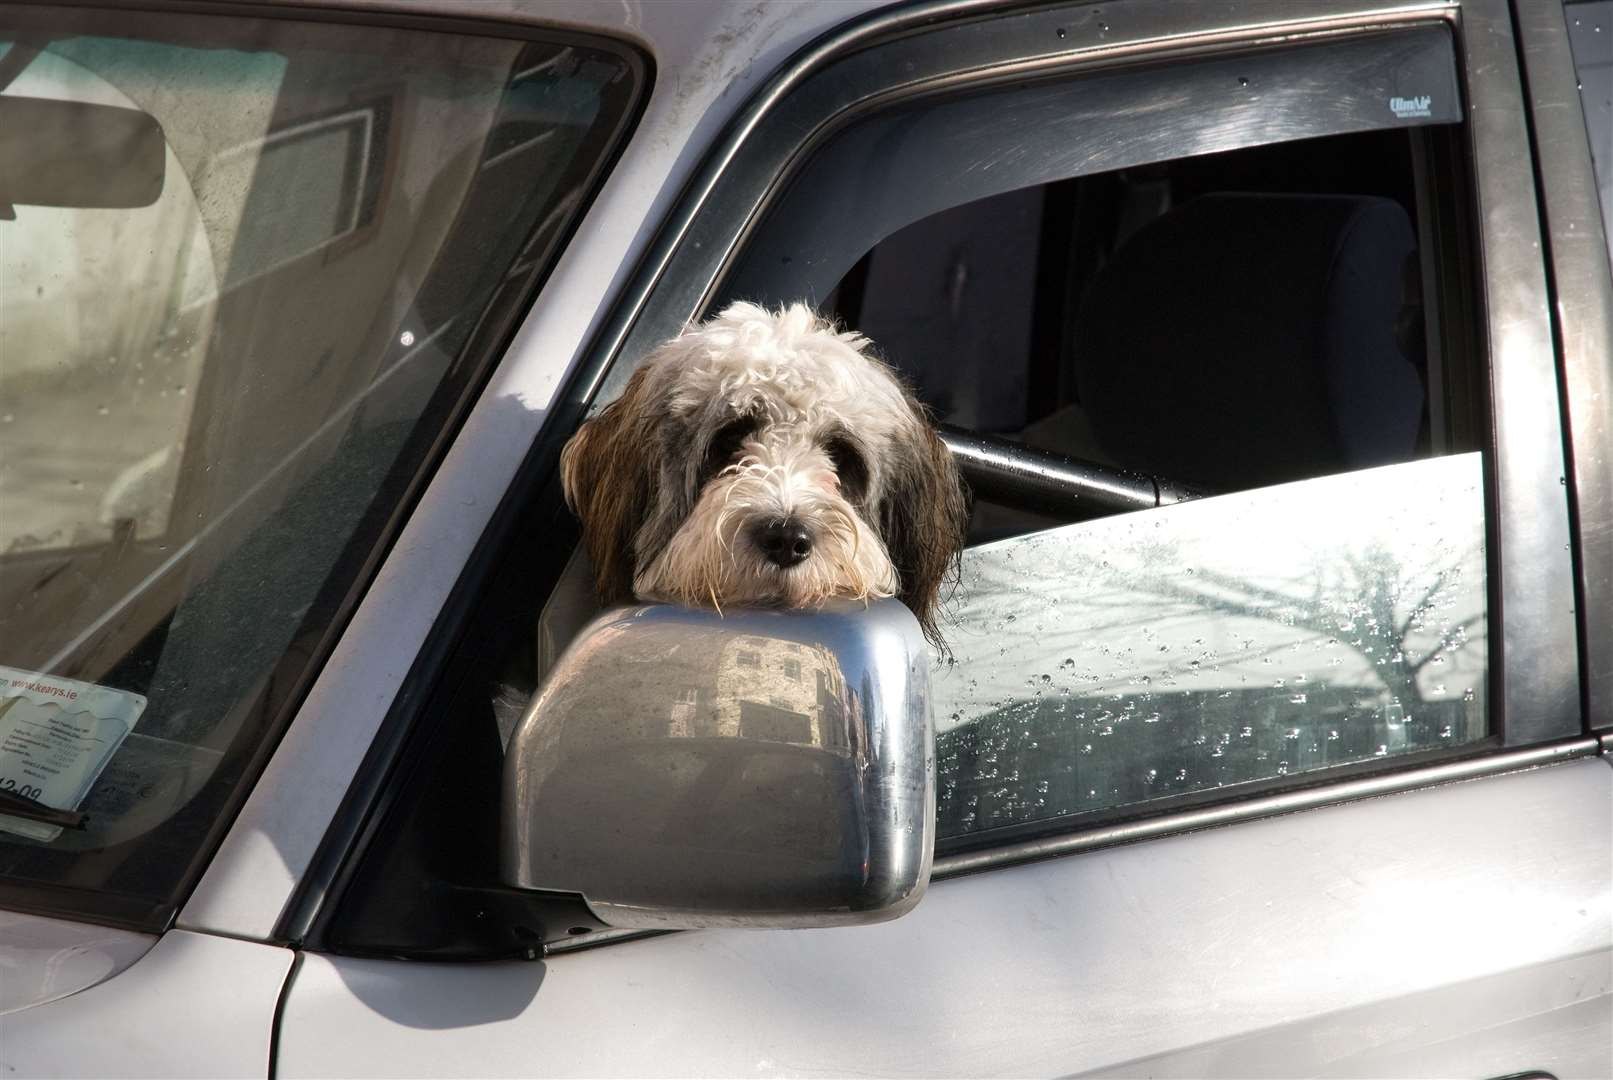 Highway Code Rule 57 states that all animals should be suitable restrained when in a car